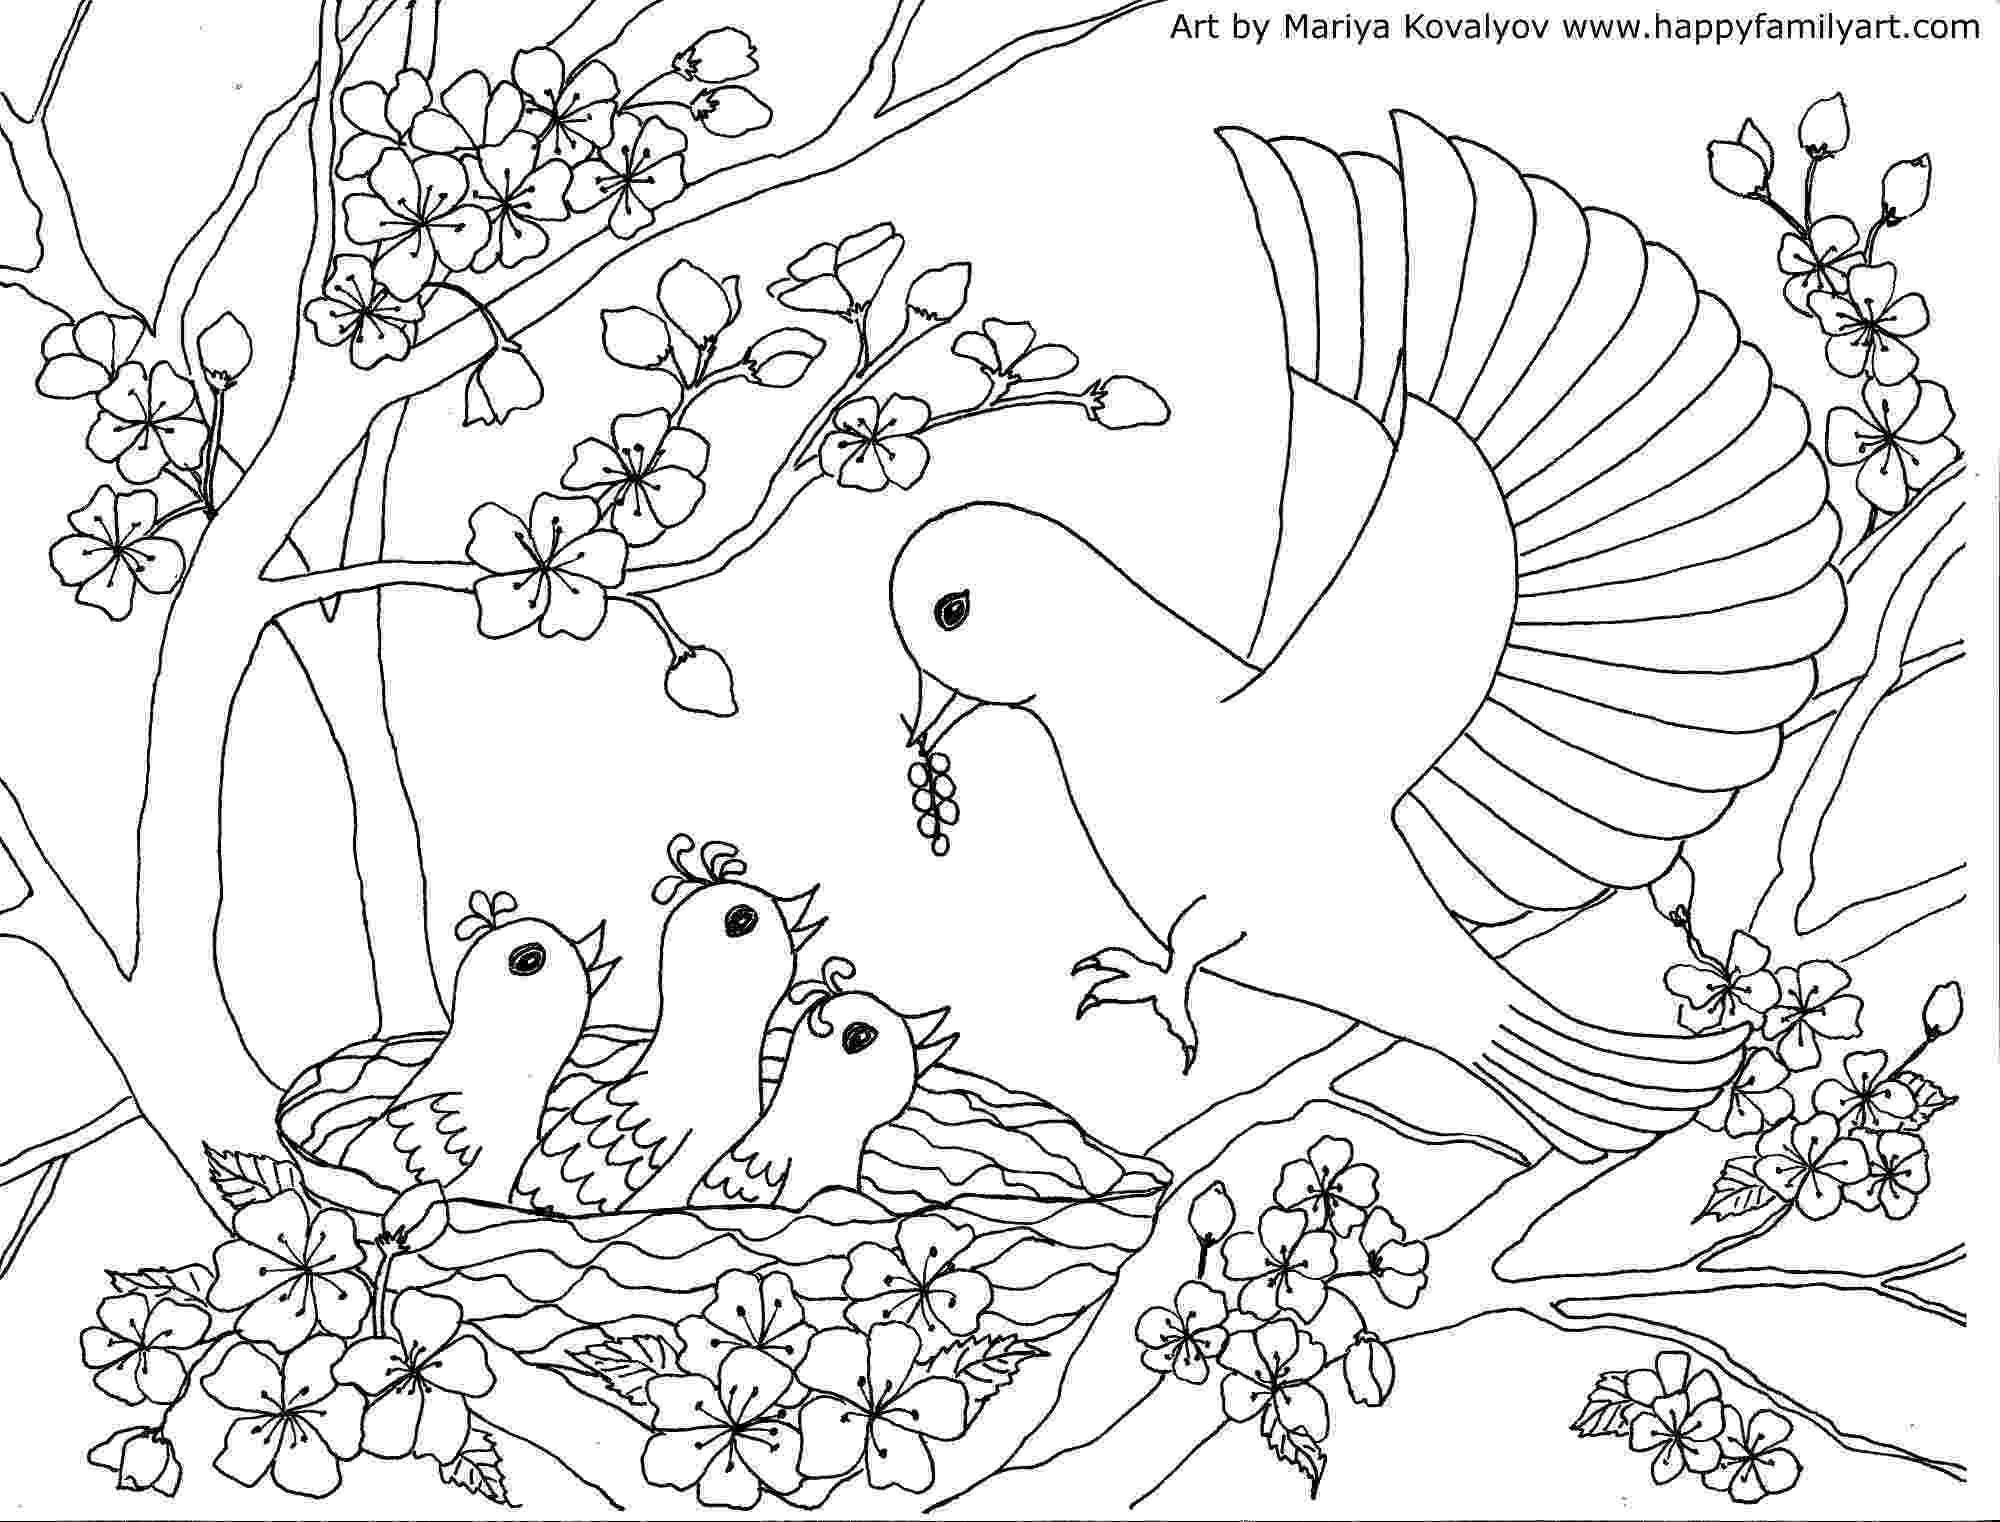 free printable bird coloring pages free printable angry bird coloring pages for kids printable pages coloring bird free